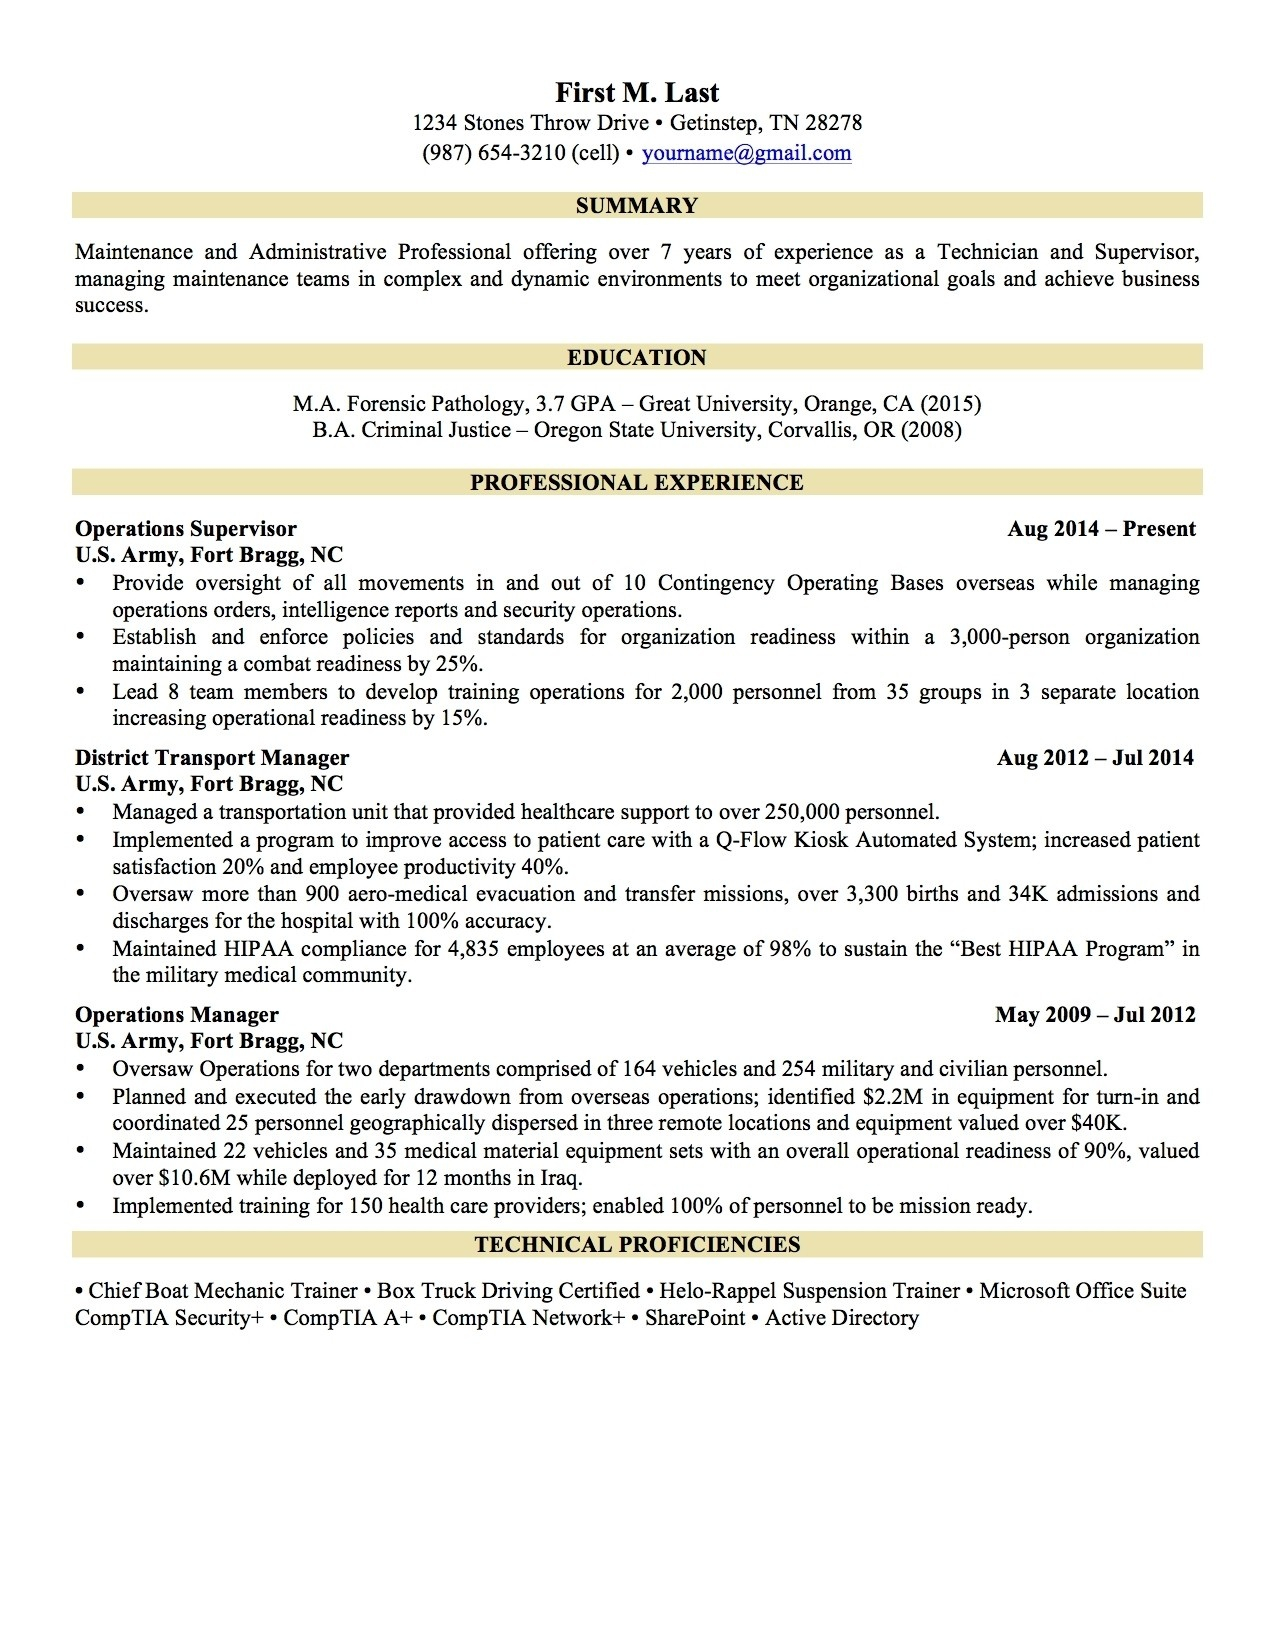 Professional Experience Resume - Resume Examples Professional Experience Inspirational Fresh Grapher